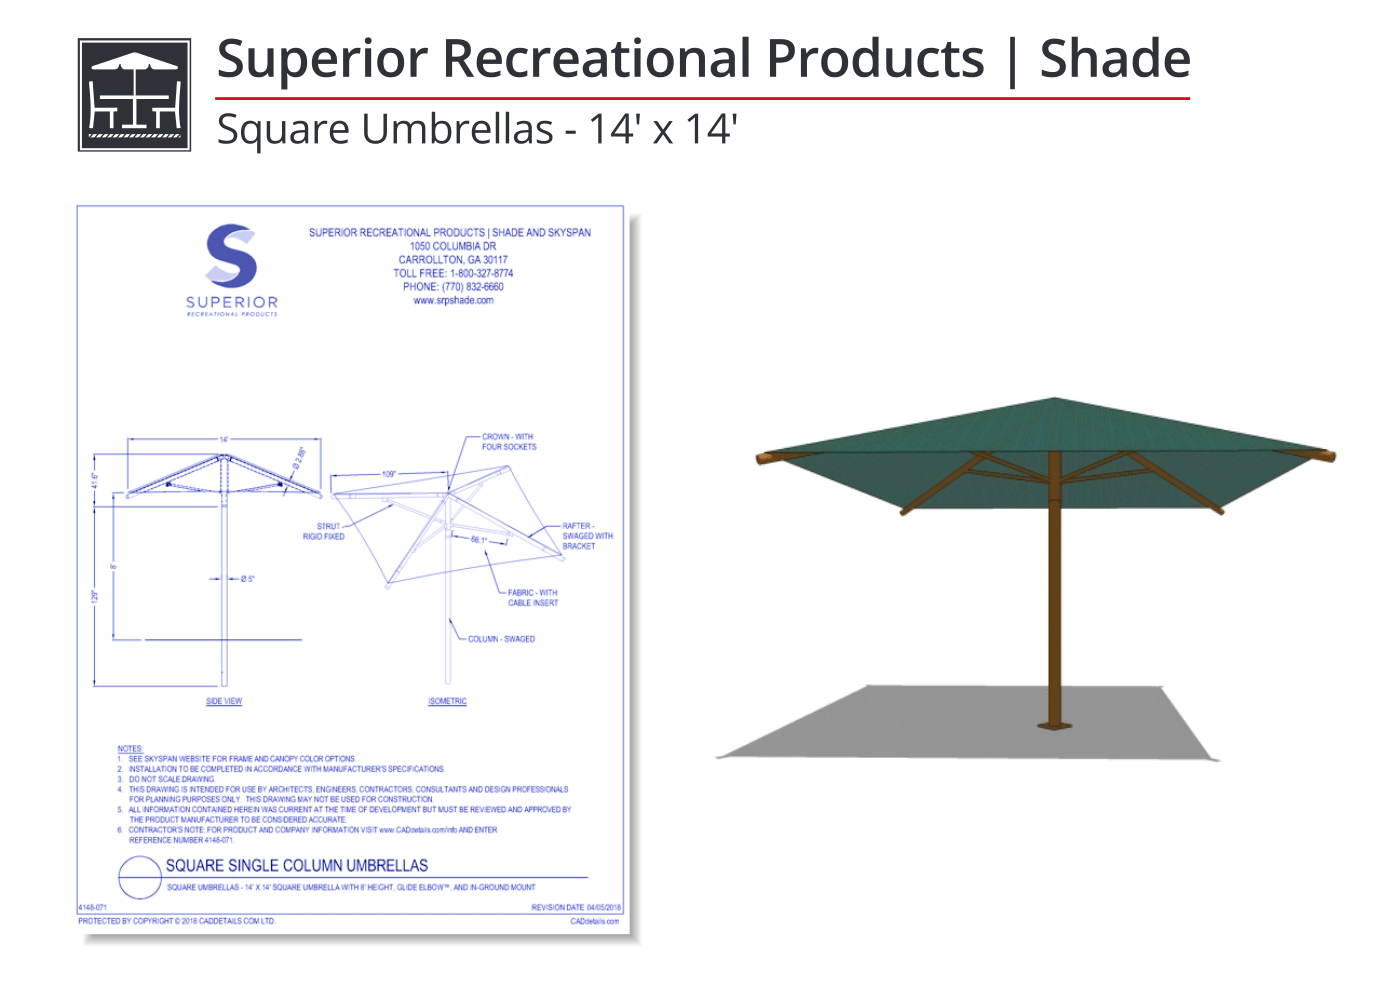 Superior-Recreational-Products-Square-Umbrellas-CAD-Drawing.png